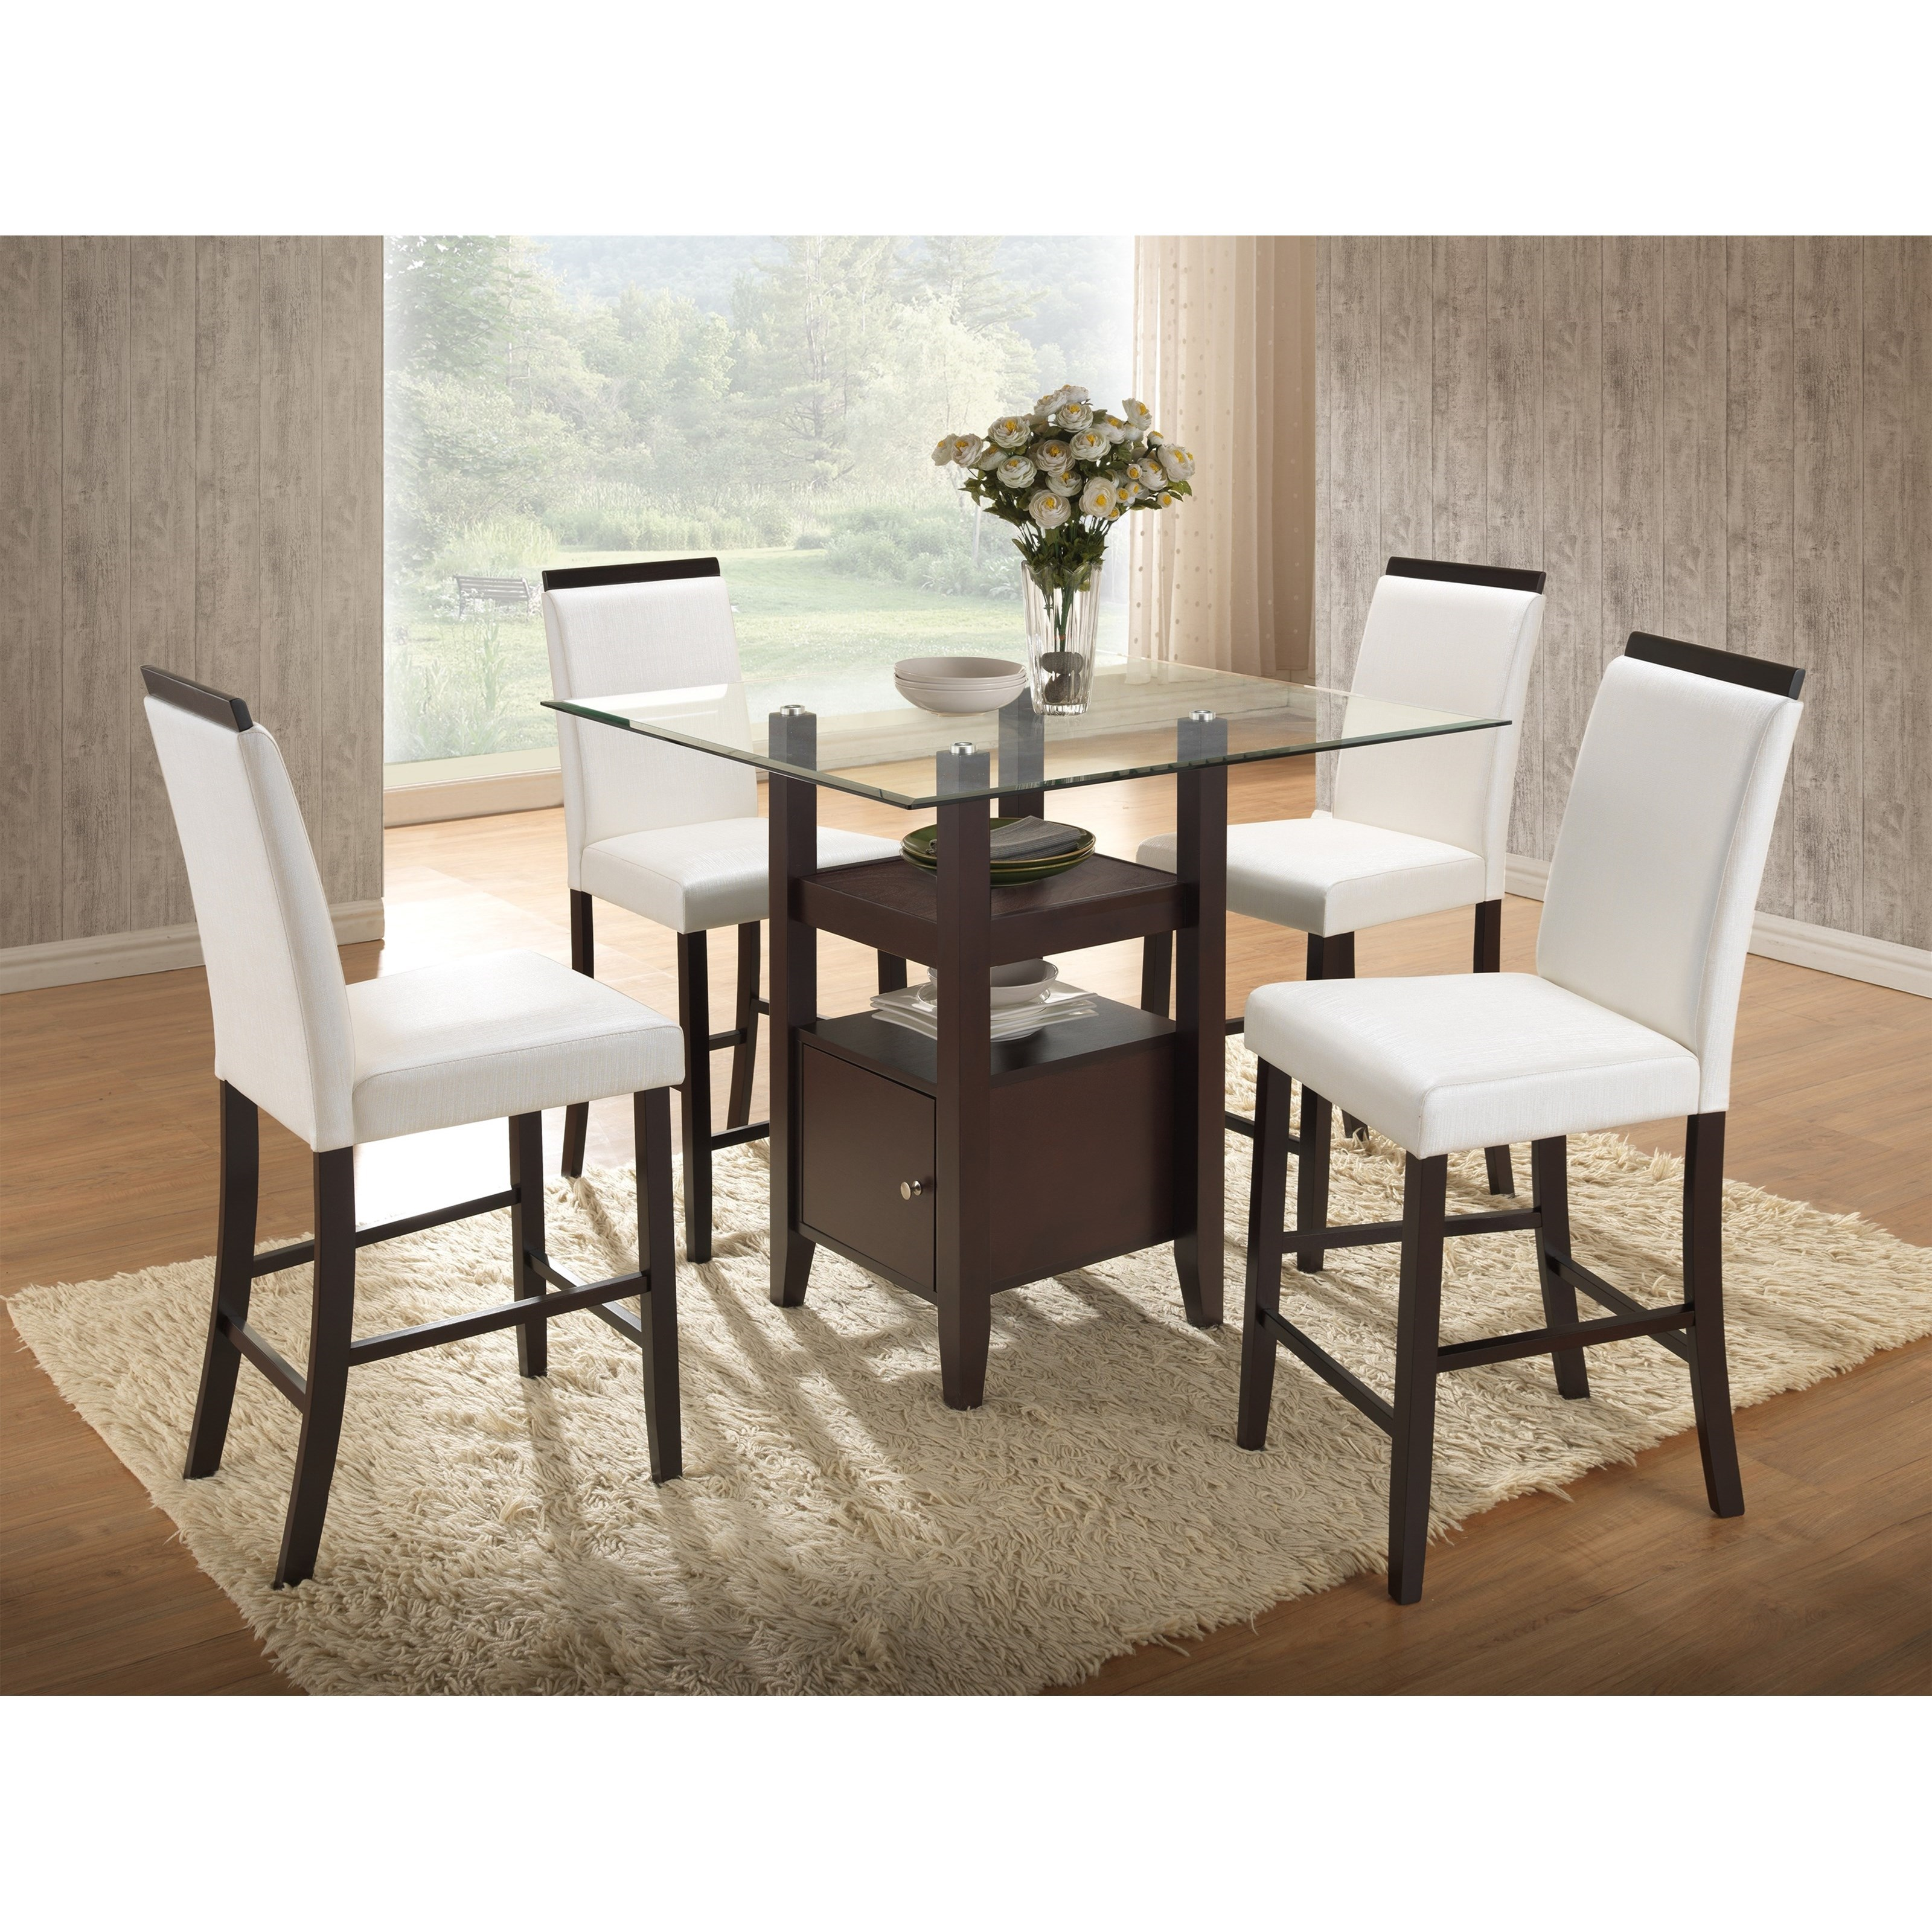 New Classic Natasha 5 Piece Counter Table Set - Item Number: D3972-12GT+12GB+4x23WH